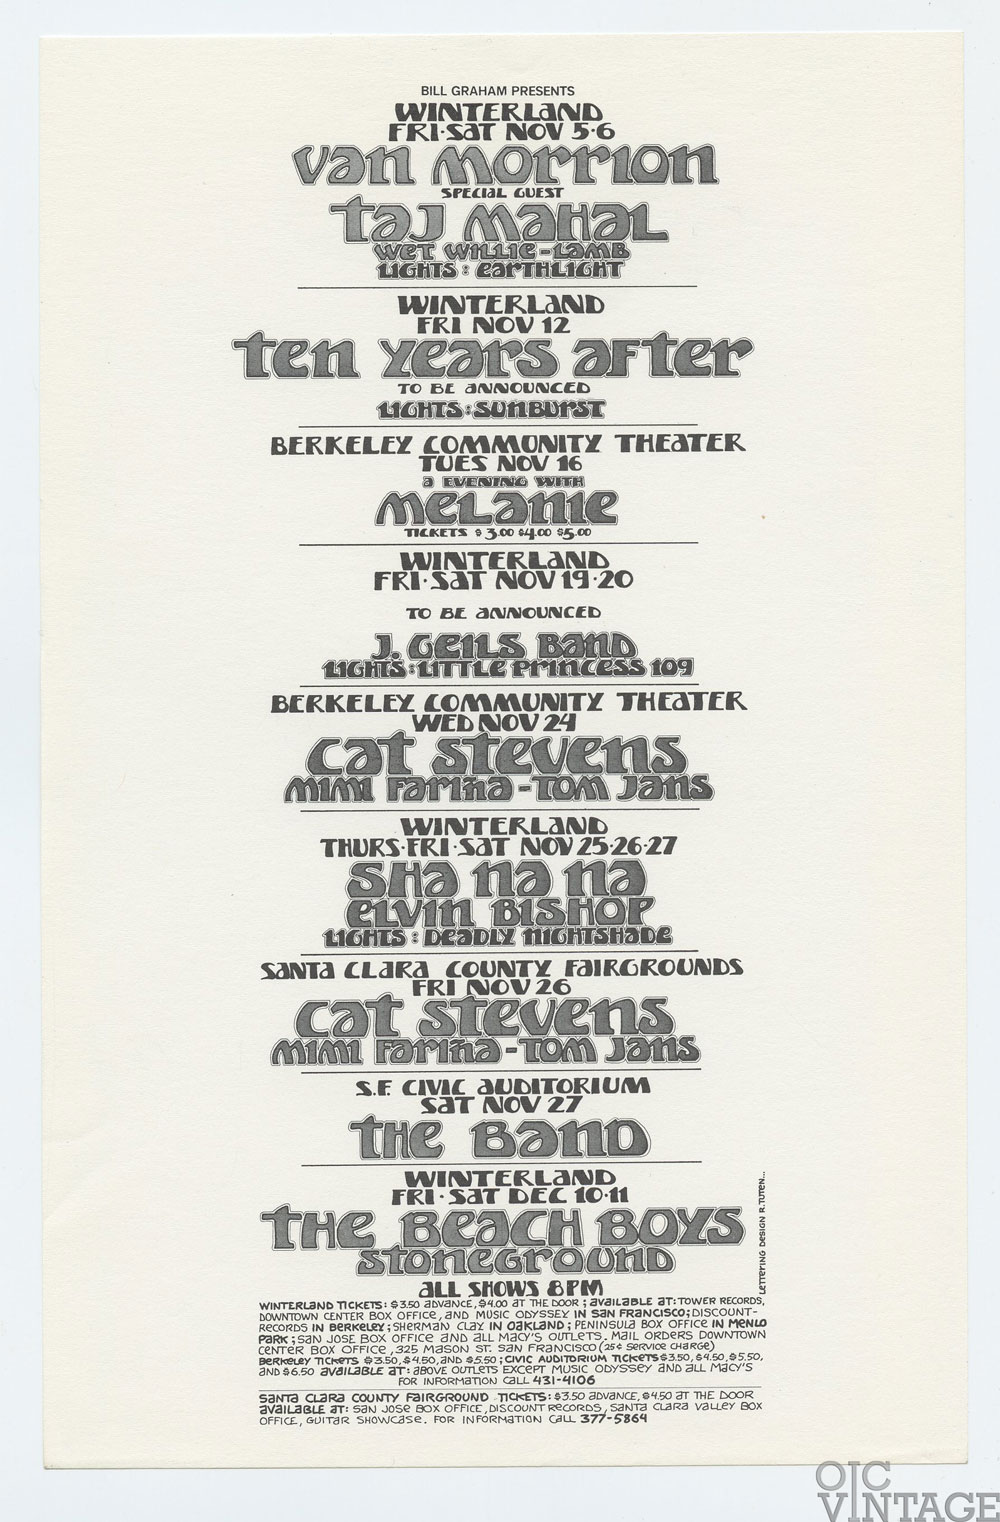 Bill Graham Presents Flyer 1971 Nov Van Morrison The Beach Boys The Band